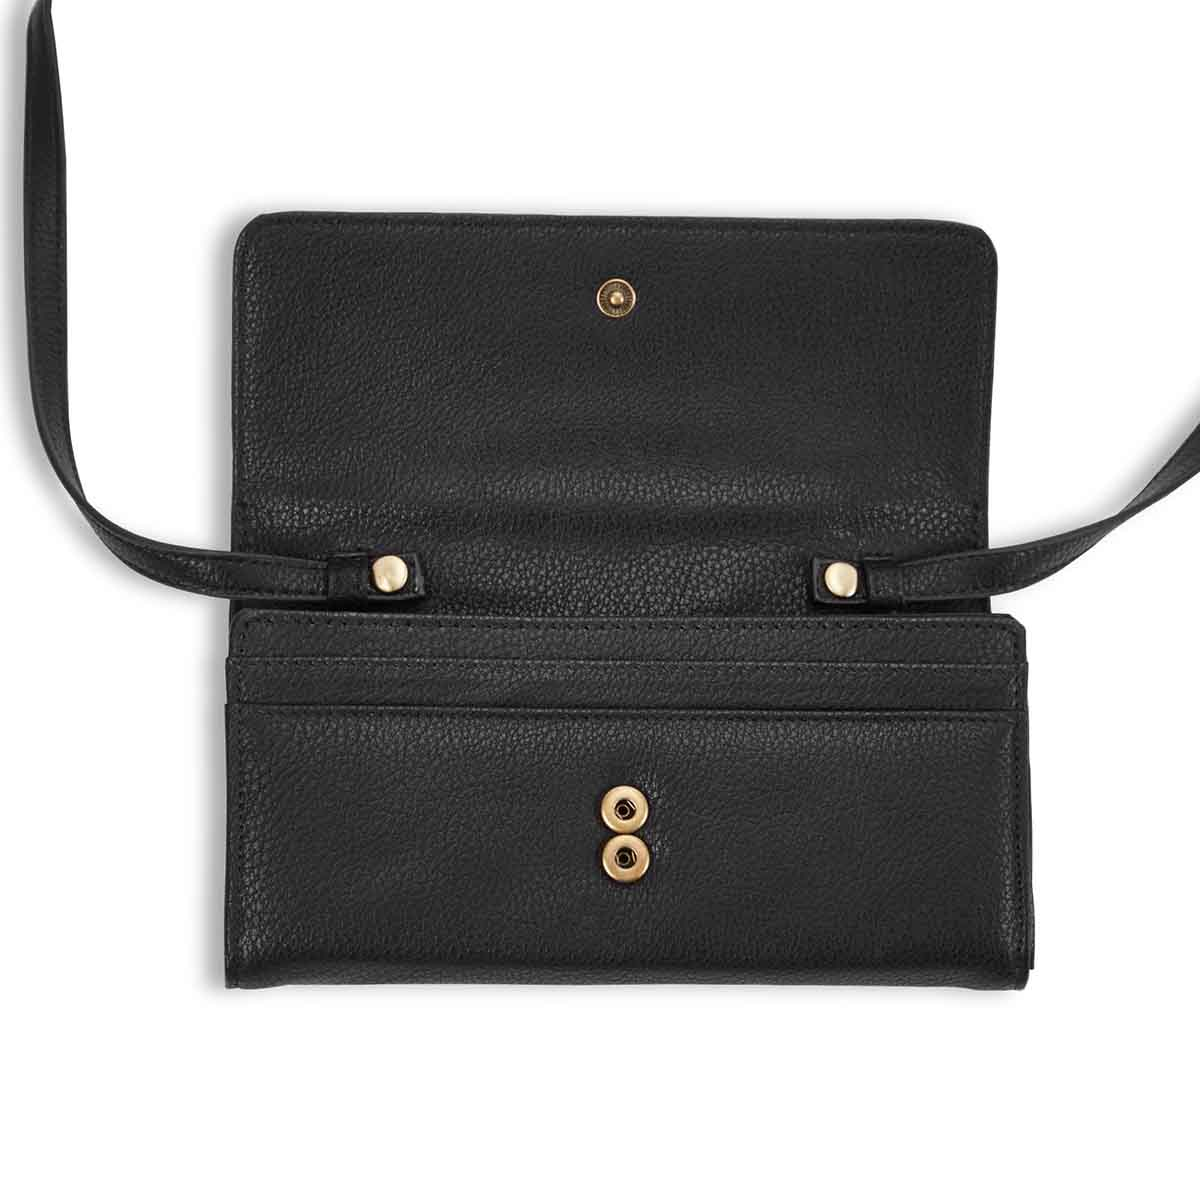 Lds Valley Collection black wristlet